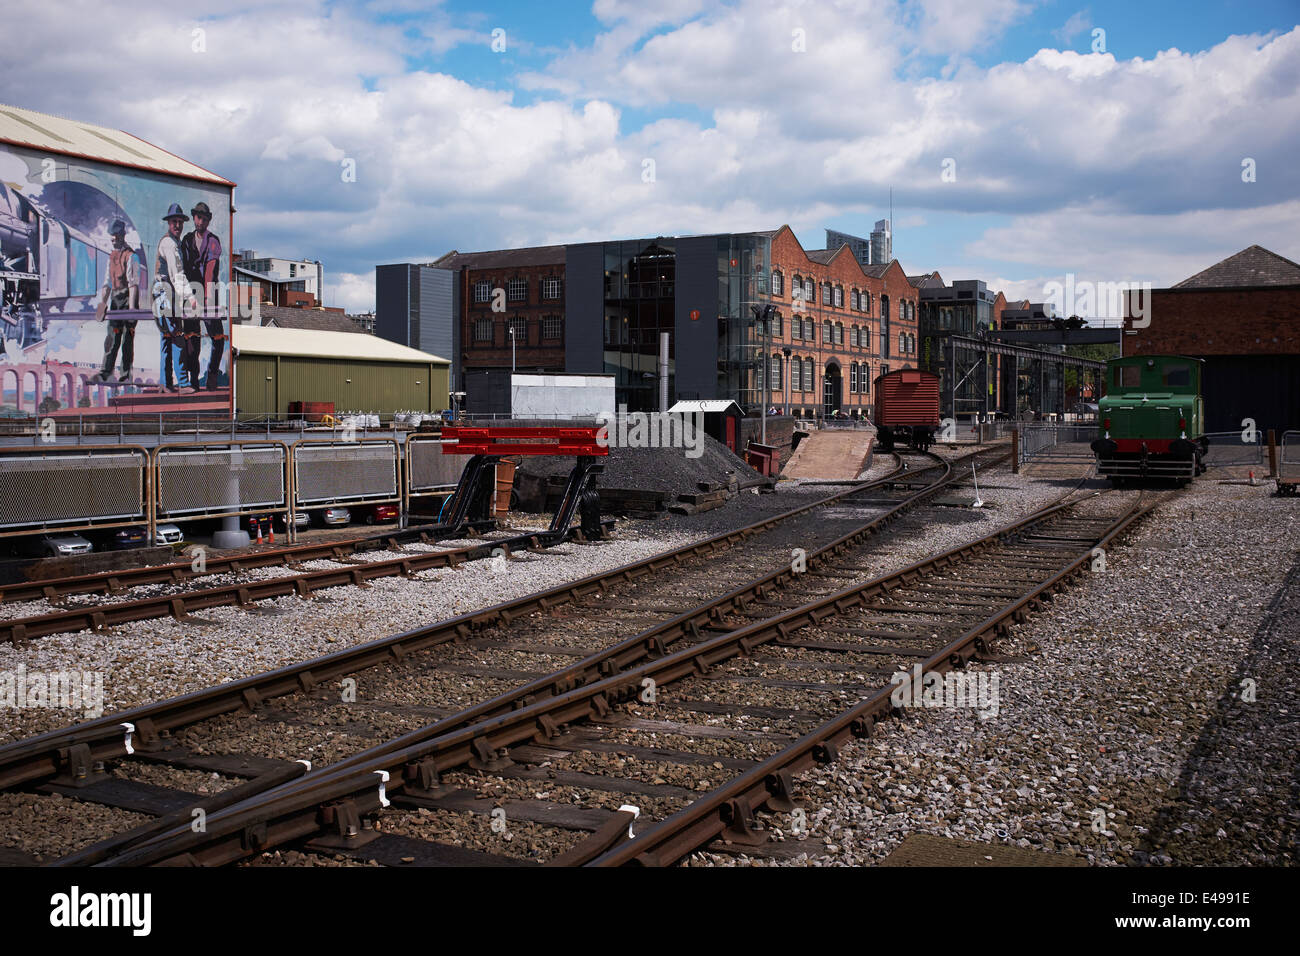 Train tracks at the Museum of Science and Industry in Manchester city centre UK - Stock Image